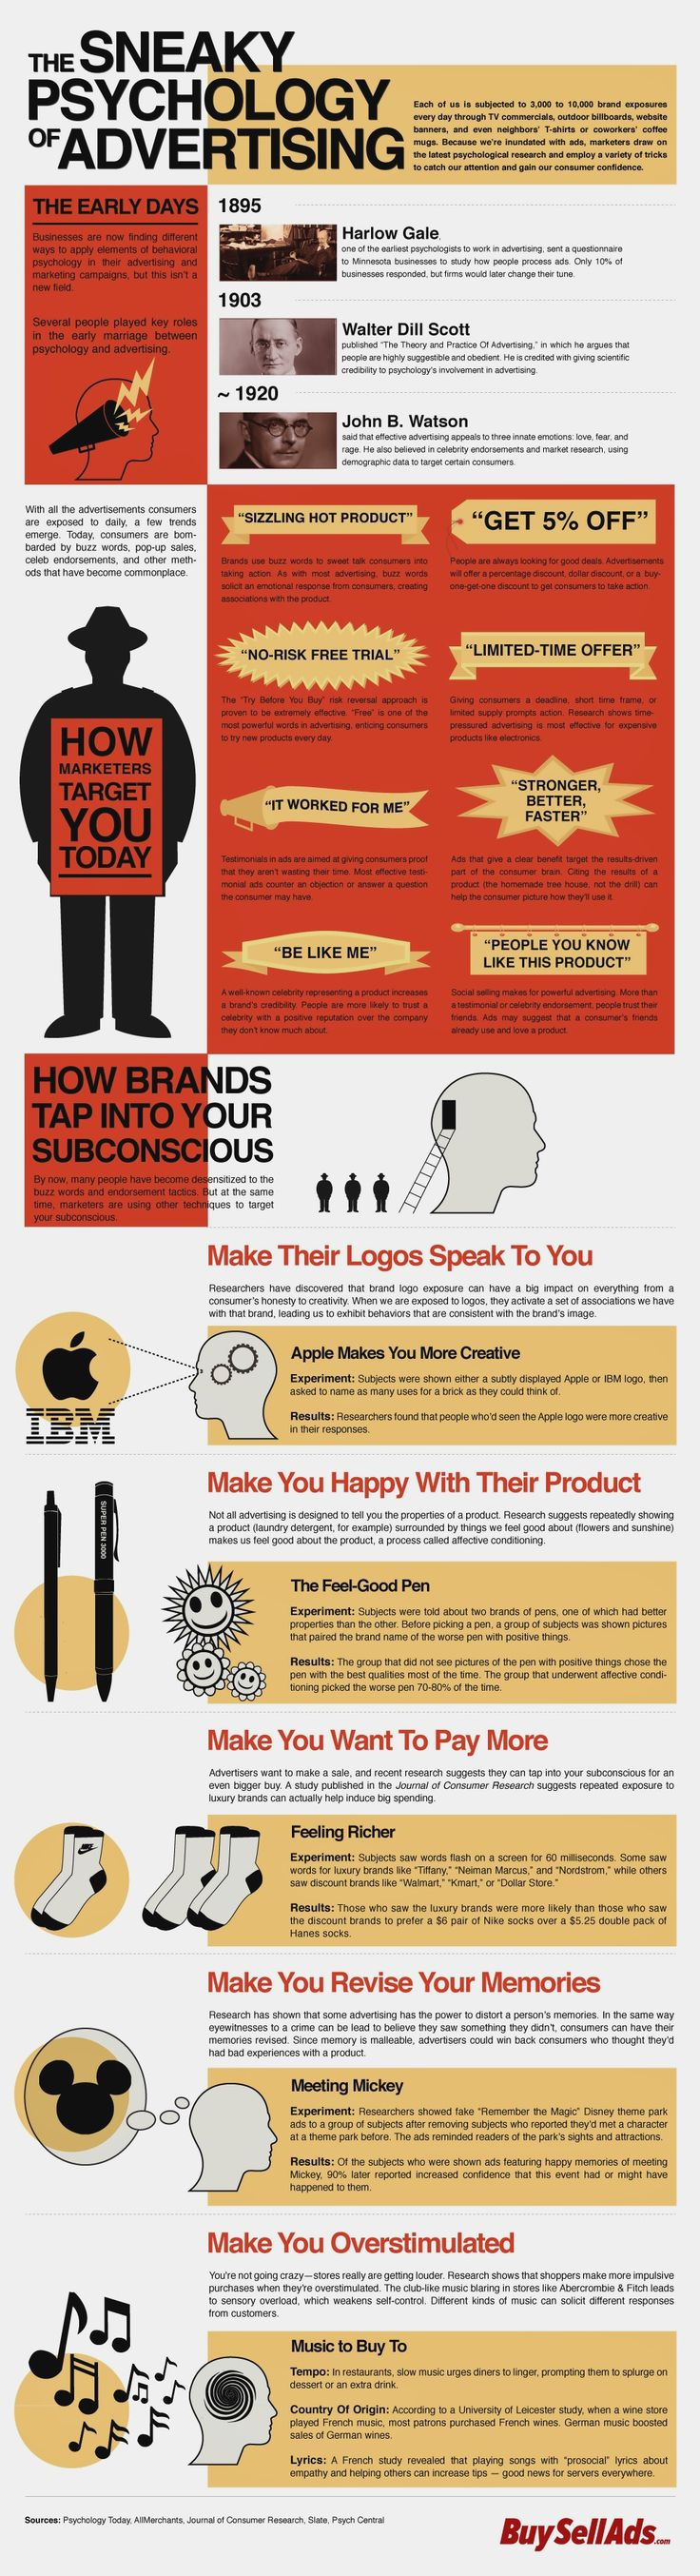 The Psychology of Advertising--love this! Not to mention subliminal advertising as well!